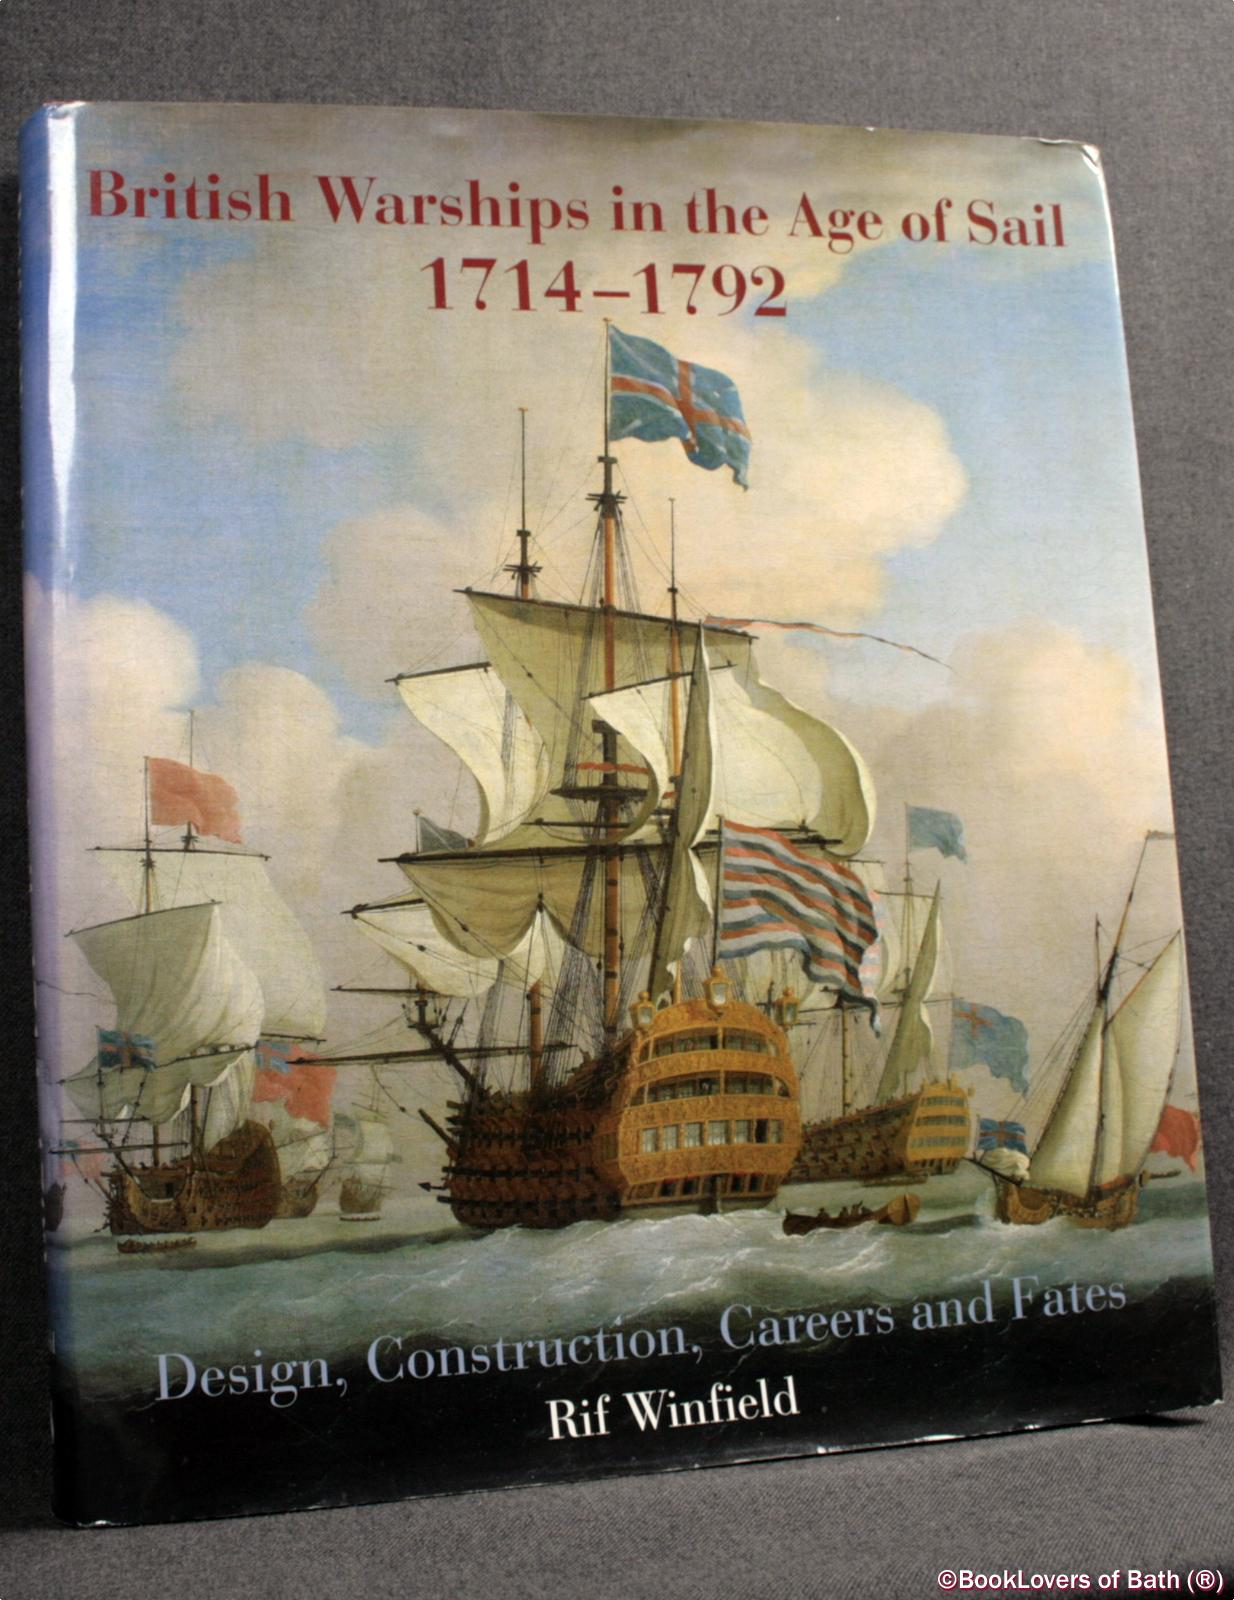 British Warships in the Age of Sail 1714-1792: Design, Construction, Careers and Fates - Rif Winfield